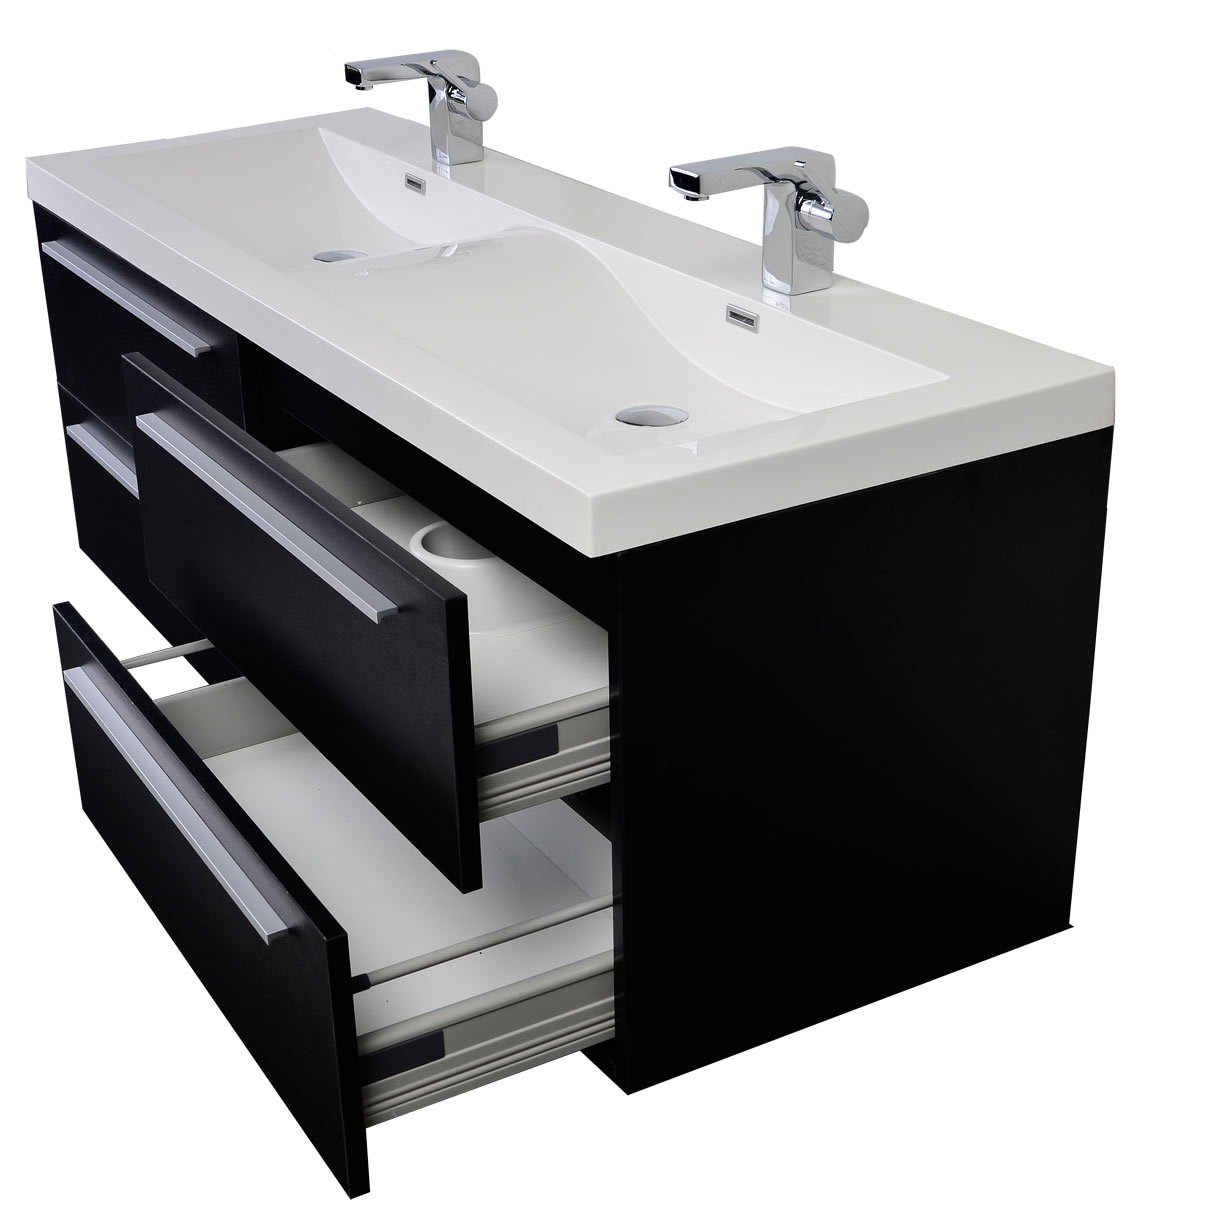 57 inch modern double sink vanity set with wavy sinks black tn b1440 bk - Modern bathroom vanity double sink ...